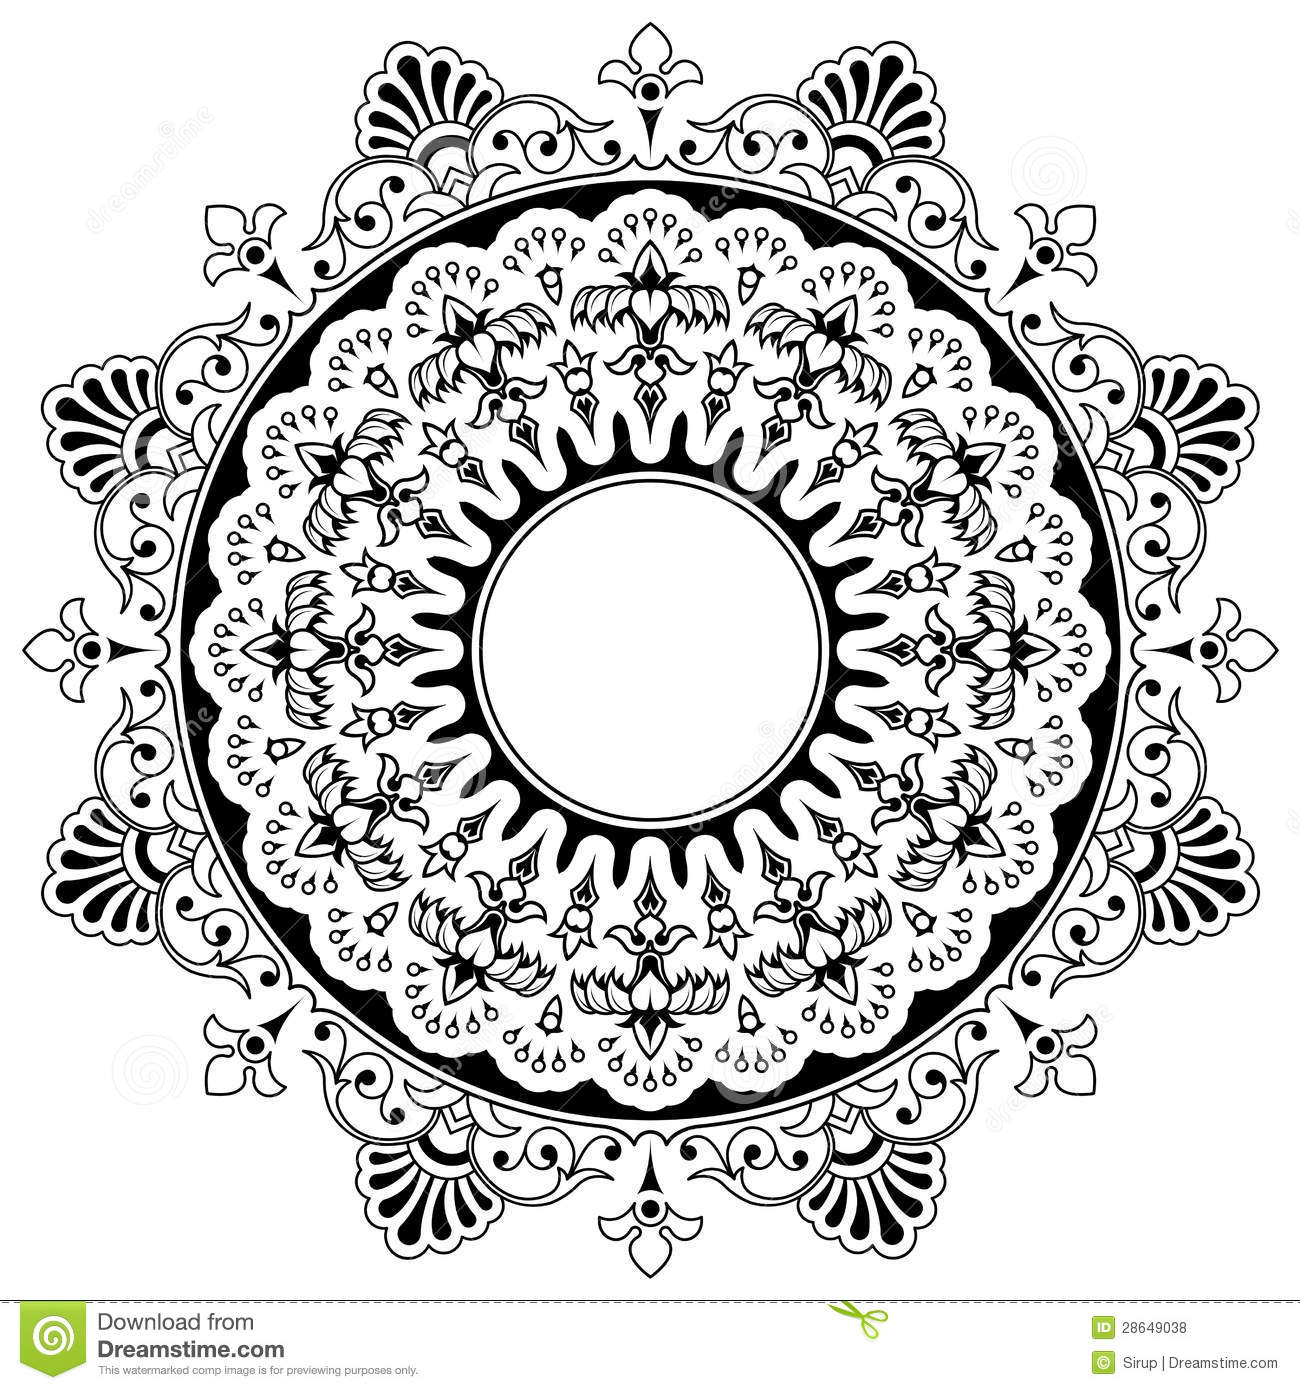 Round Floral Calligraphic Border Royalty Free Stock Photos ...